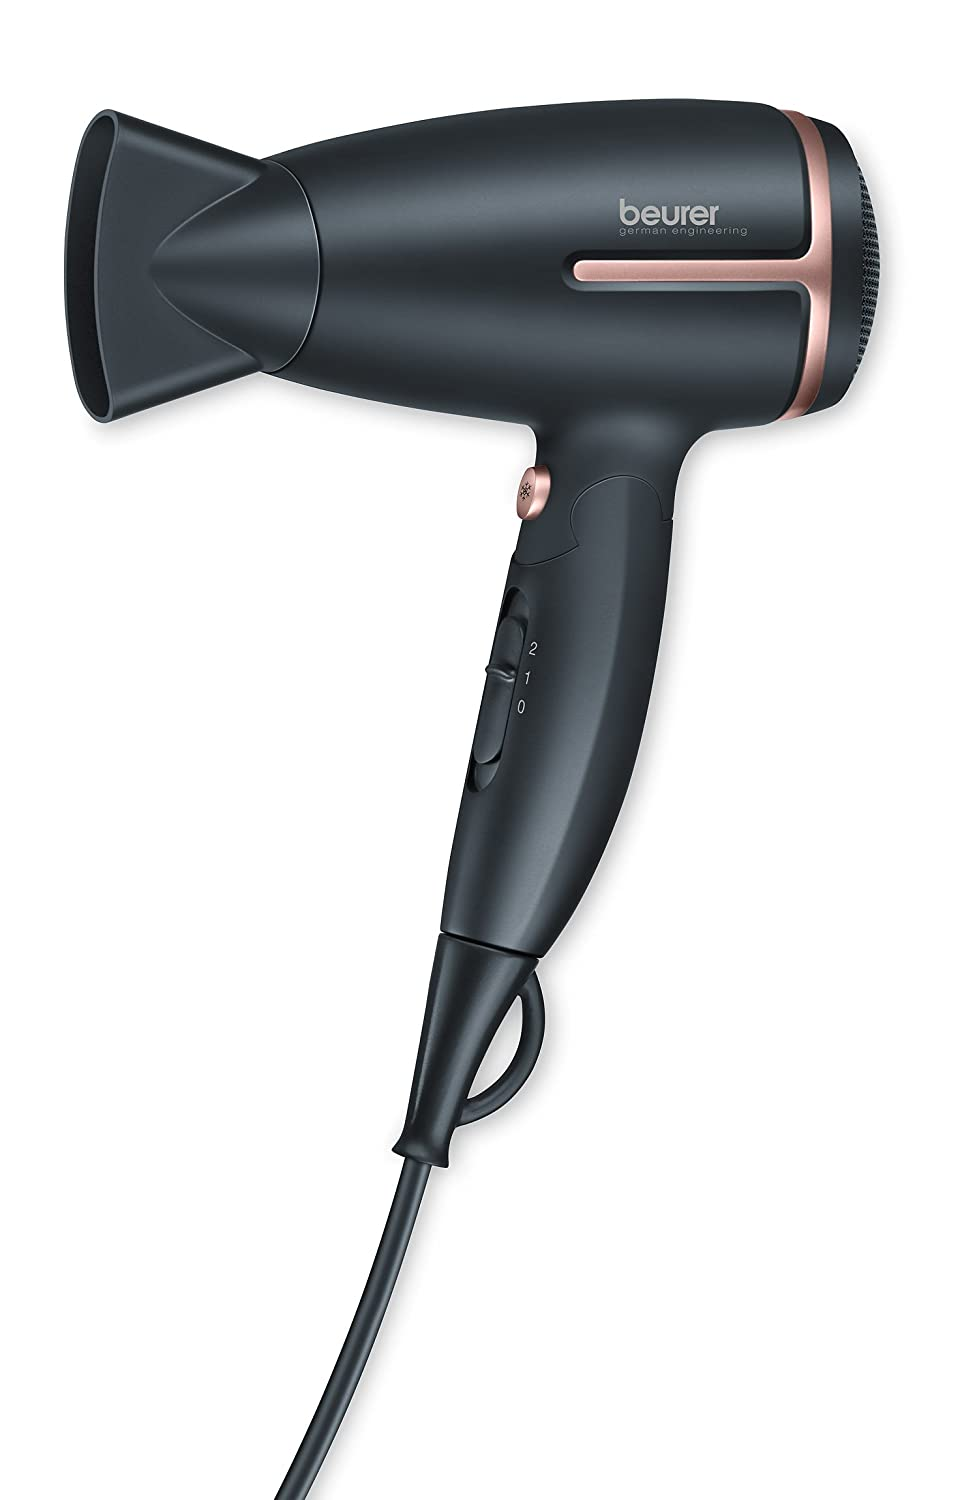 Beurer Style Pro HC25UK Premium Travel Hair Dryer 591.23